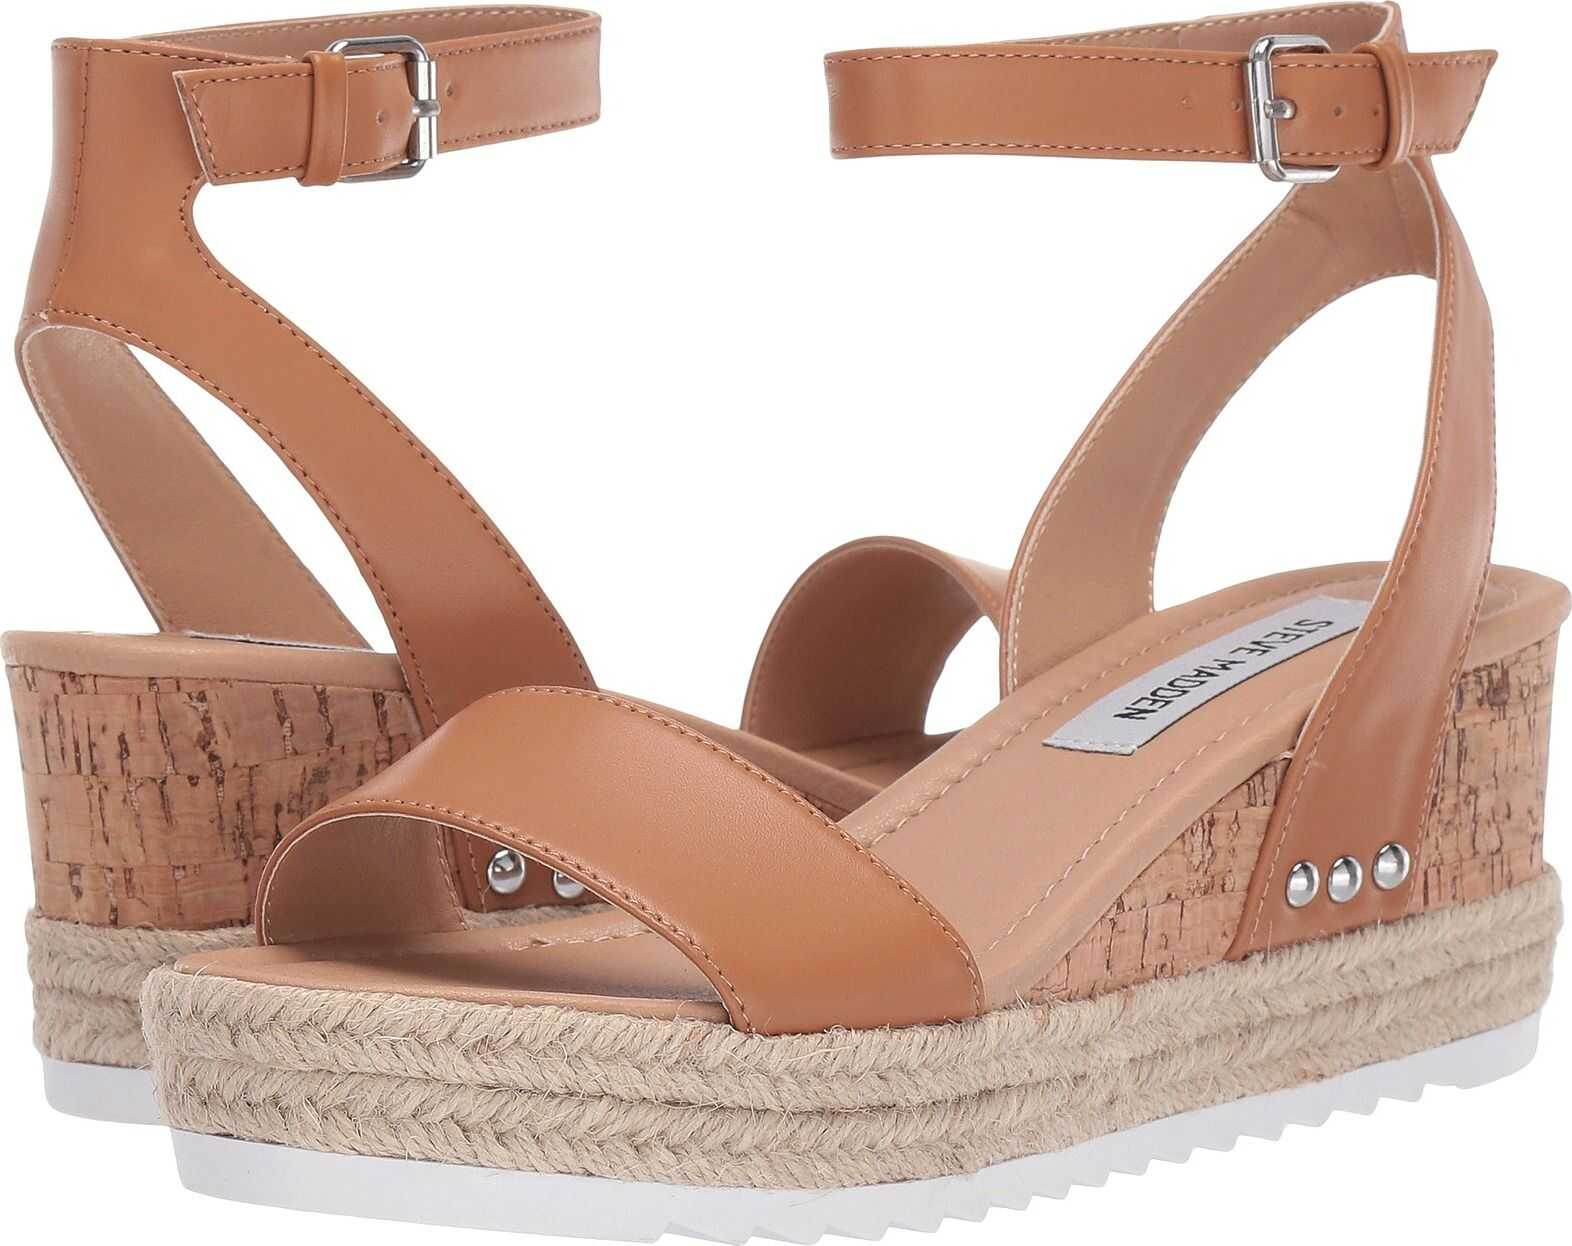 Steve Madden Jaide Tan Leather